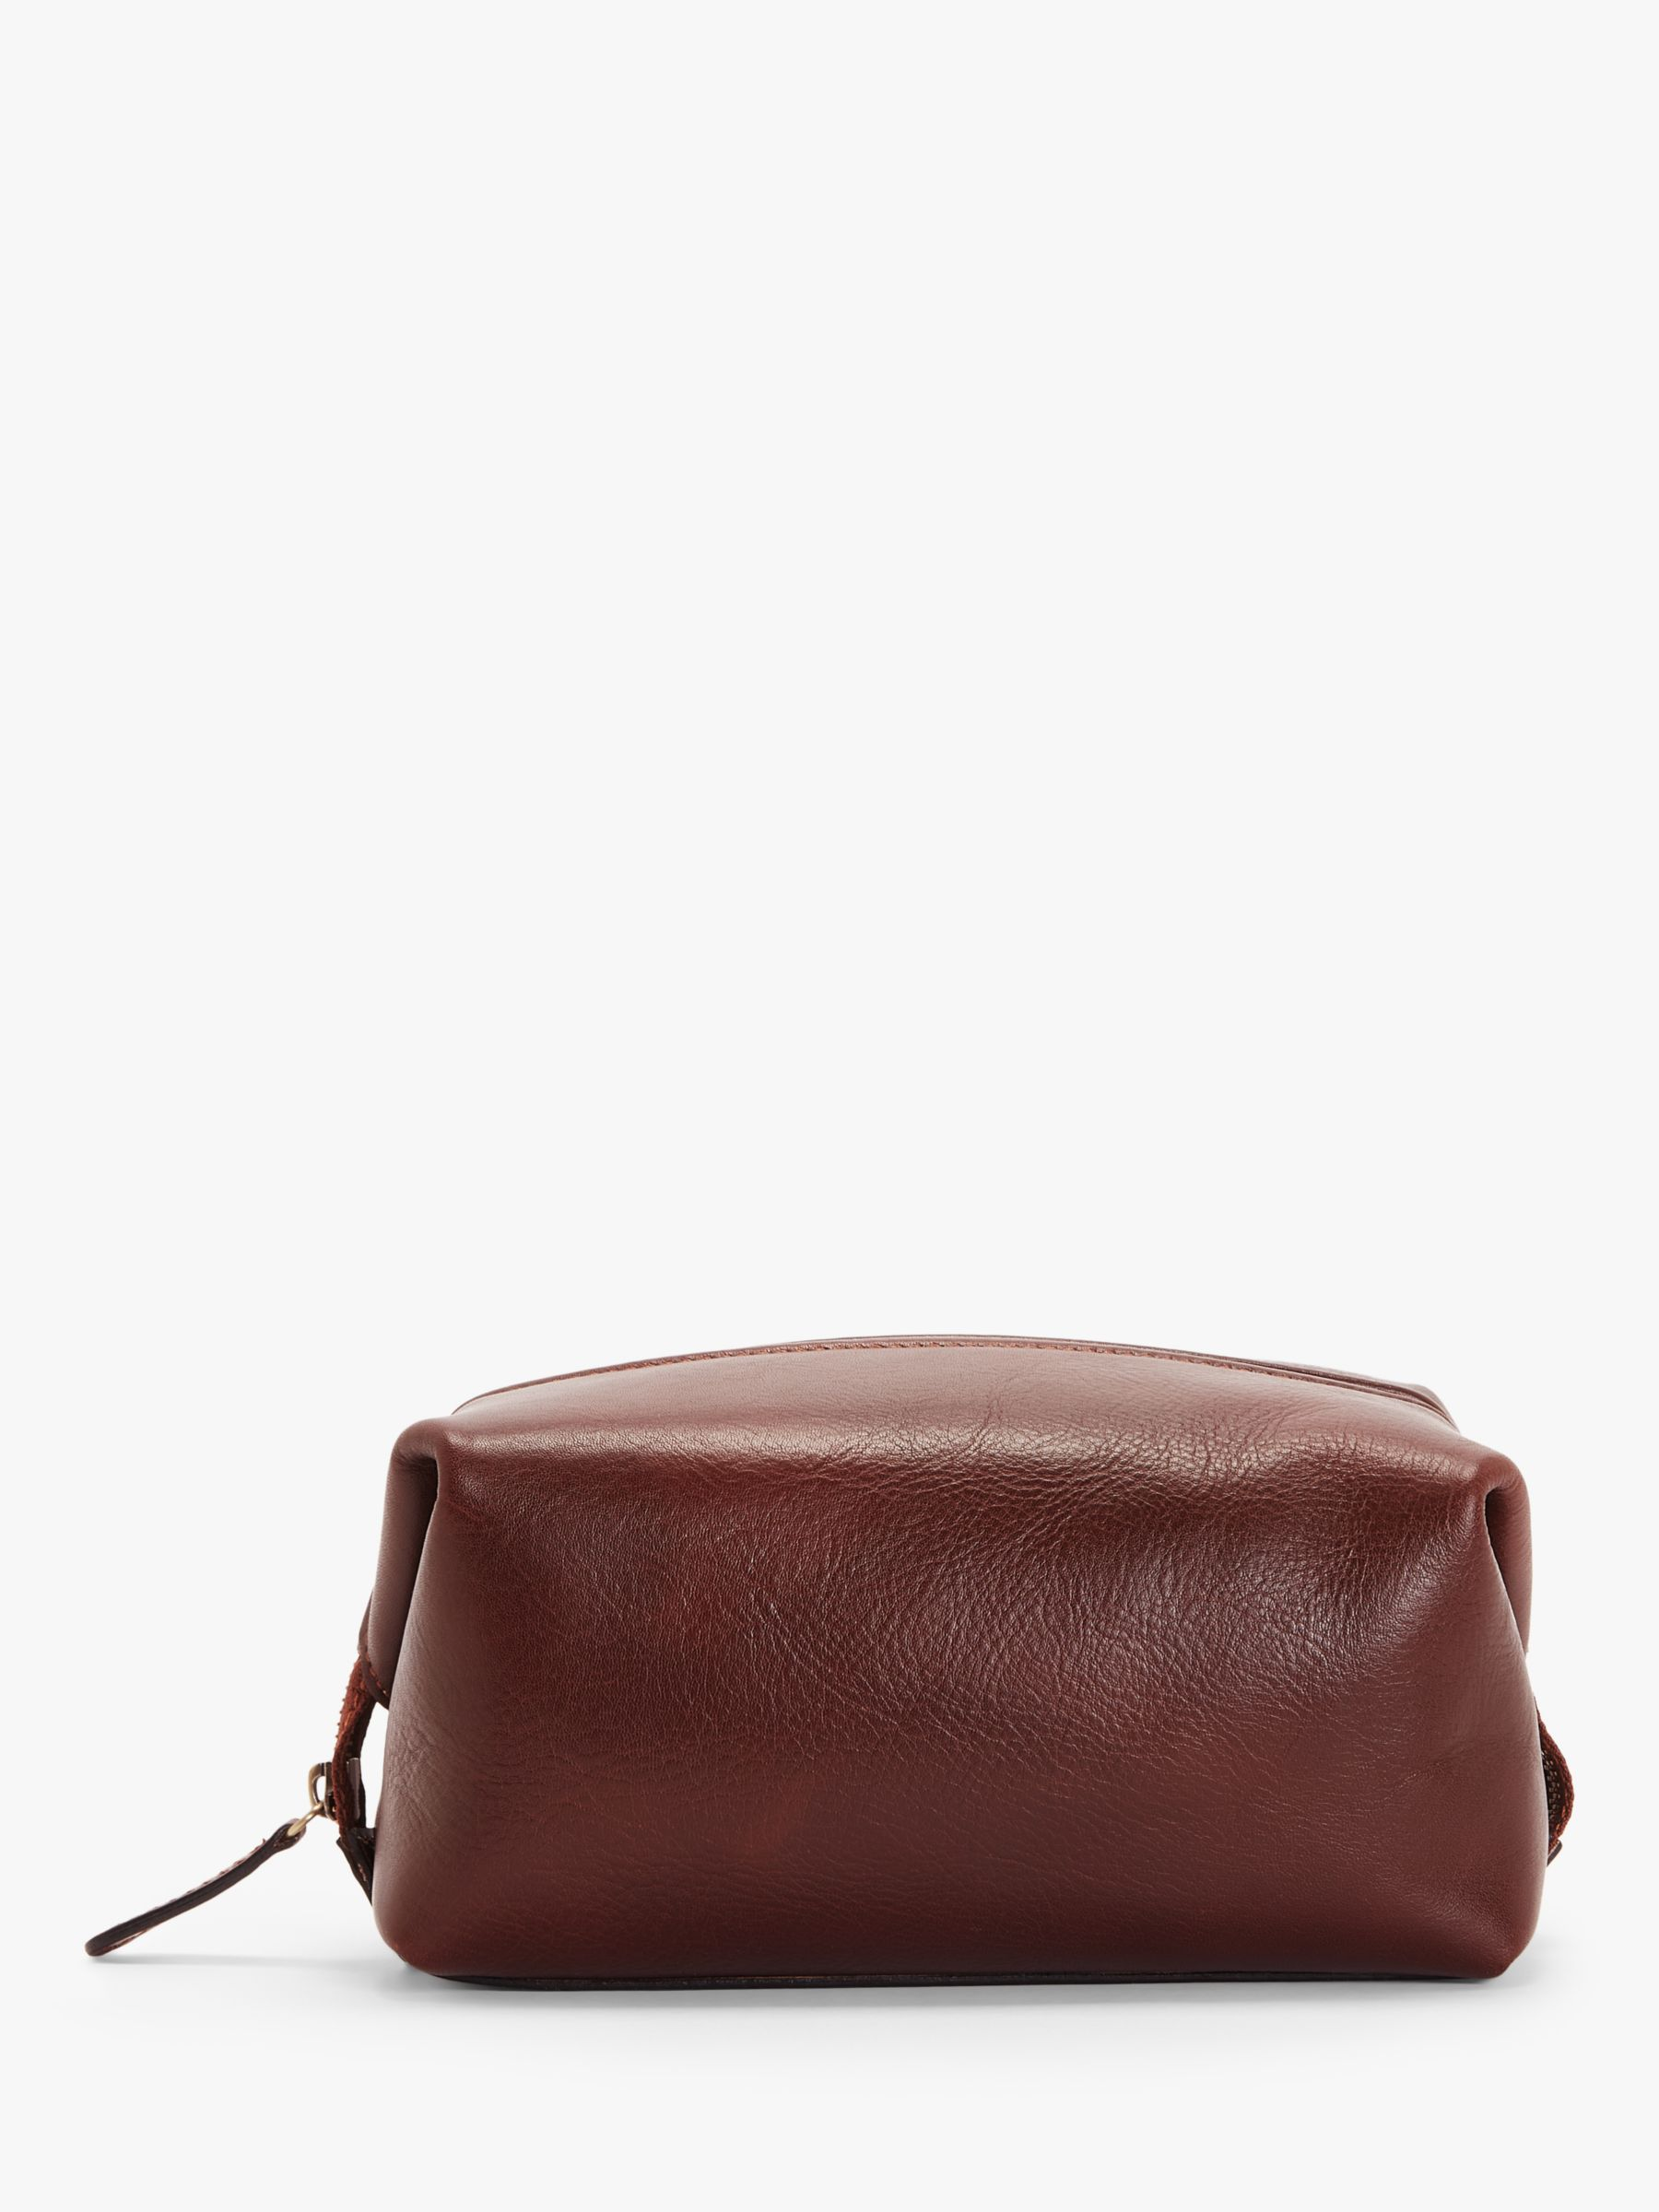 10e5941b0e5e John Lewis & Partners Made in Italy Leather Wash Bag, Brown at John Lewis &  Partners